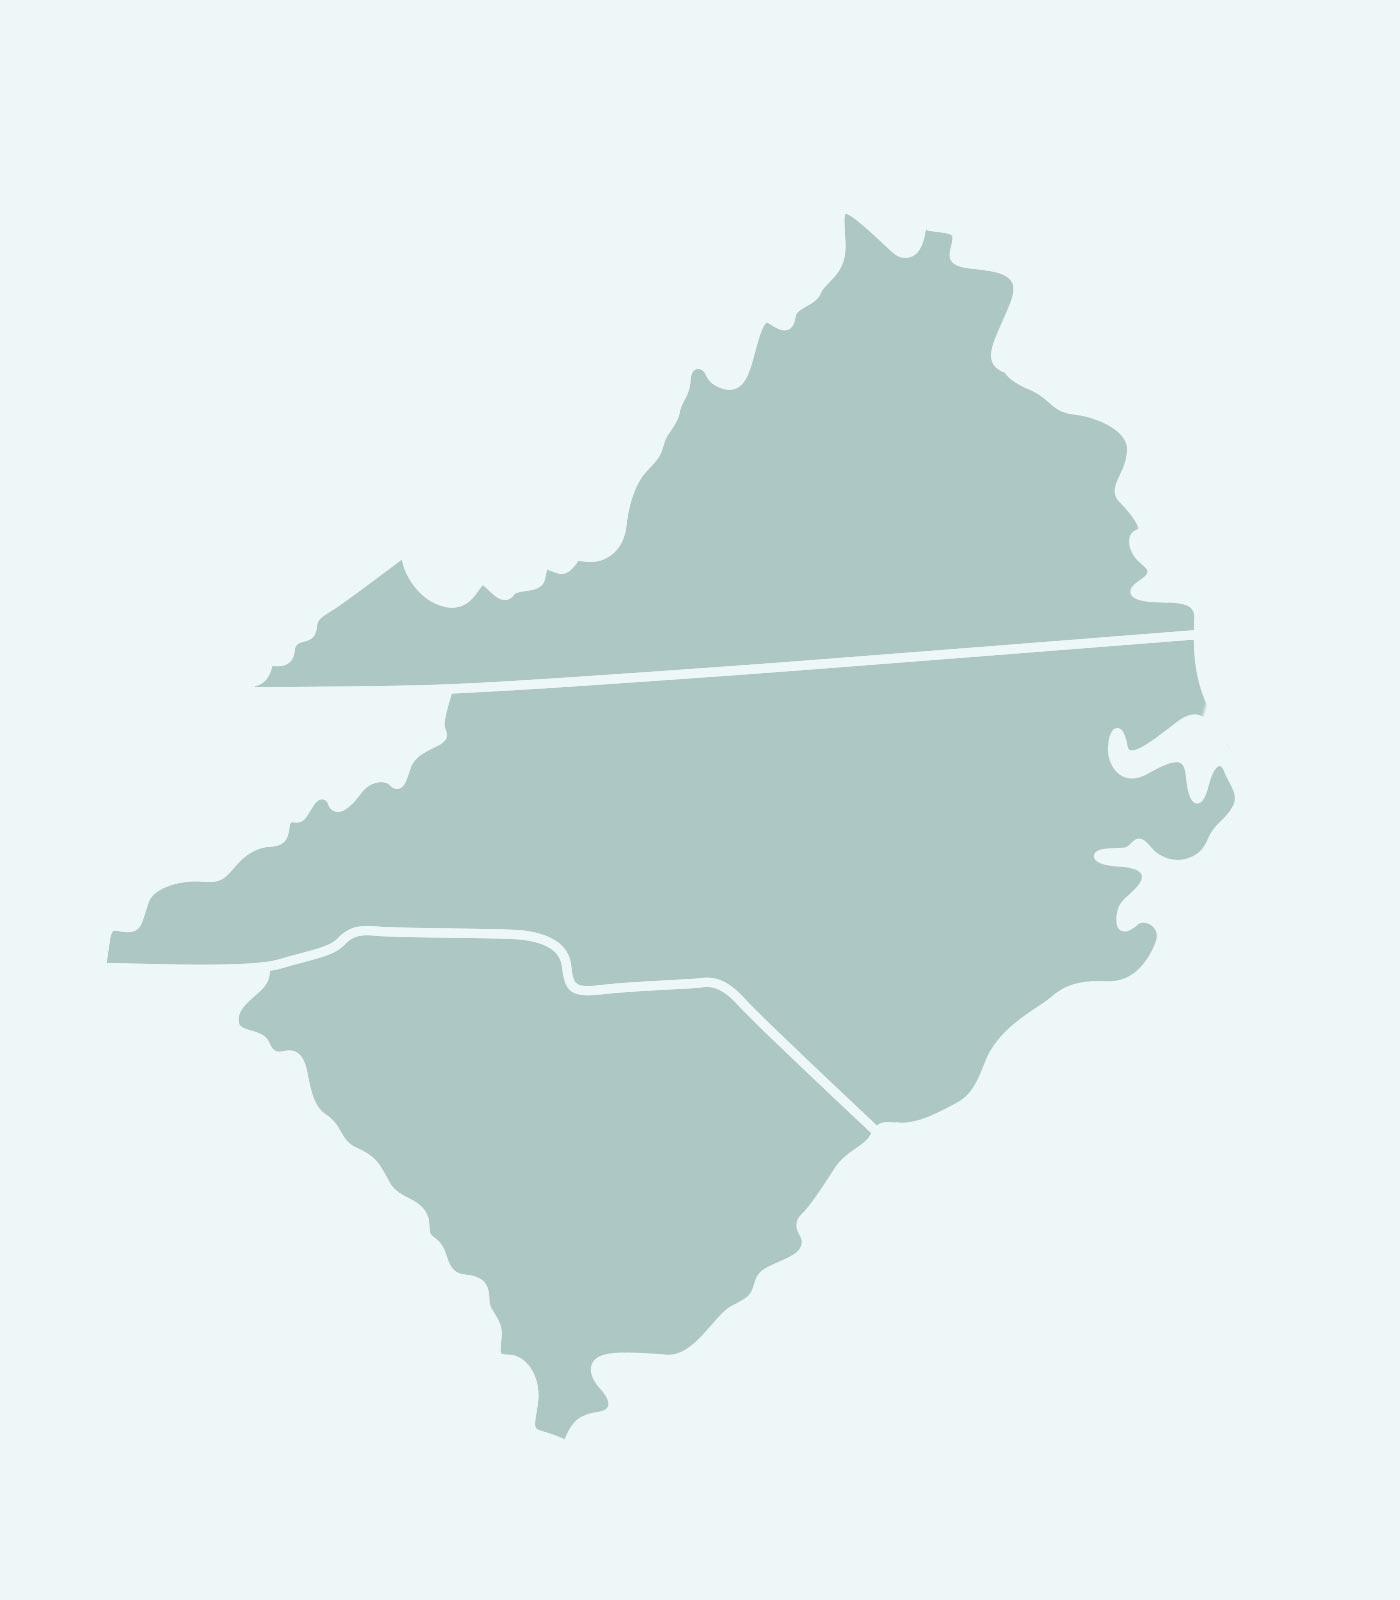 Sales Rep's Map of Virginia, North Carolina, South Carolina for Women's Clothing Line Keren Hart